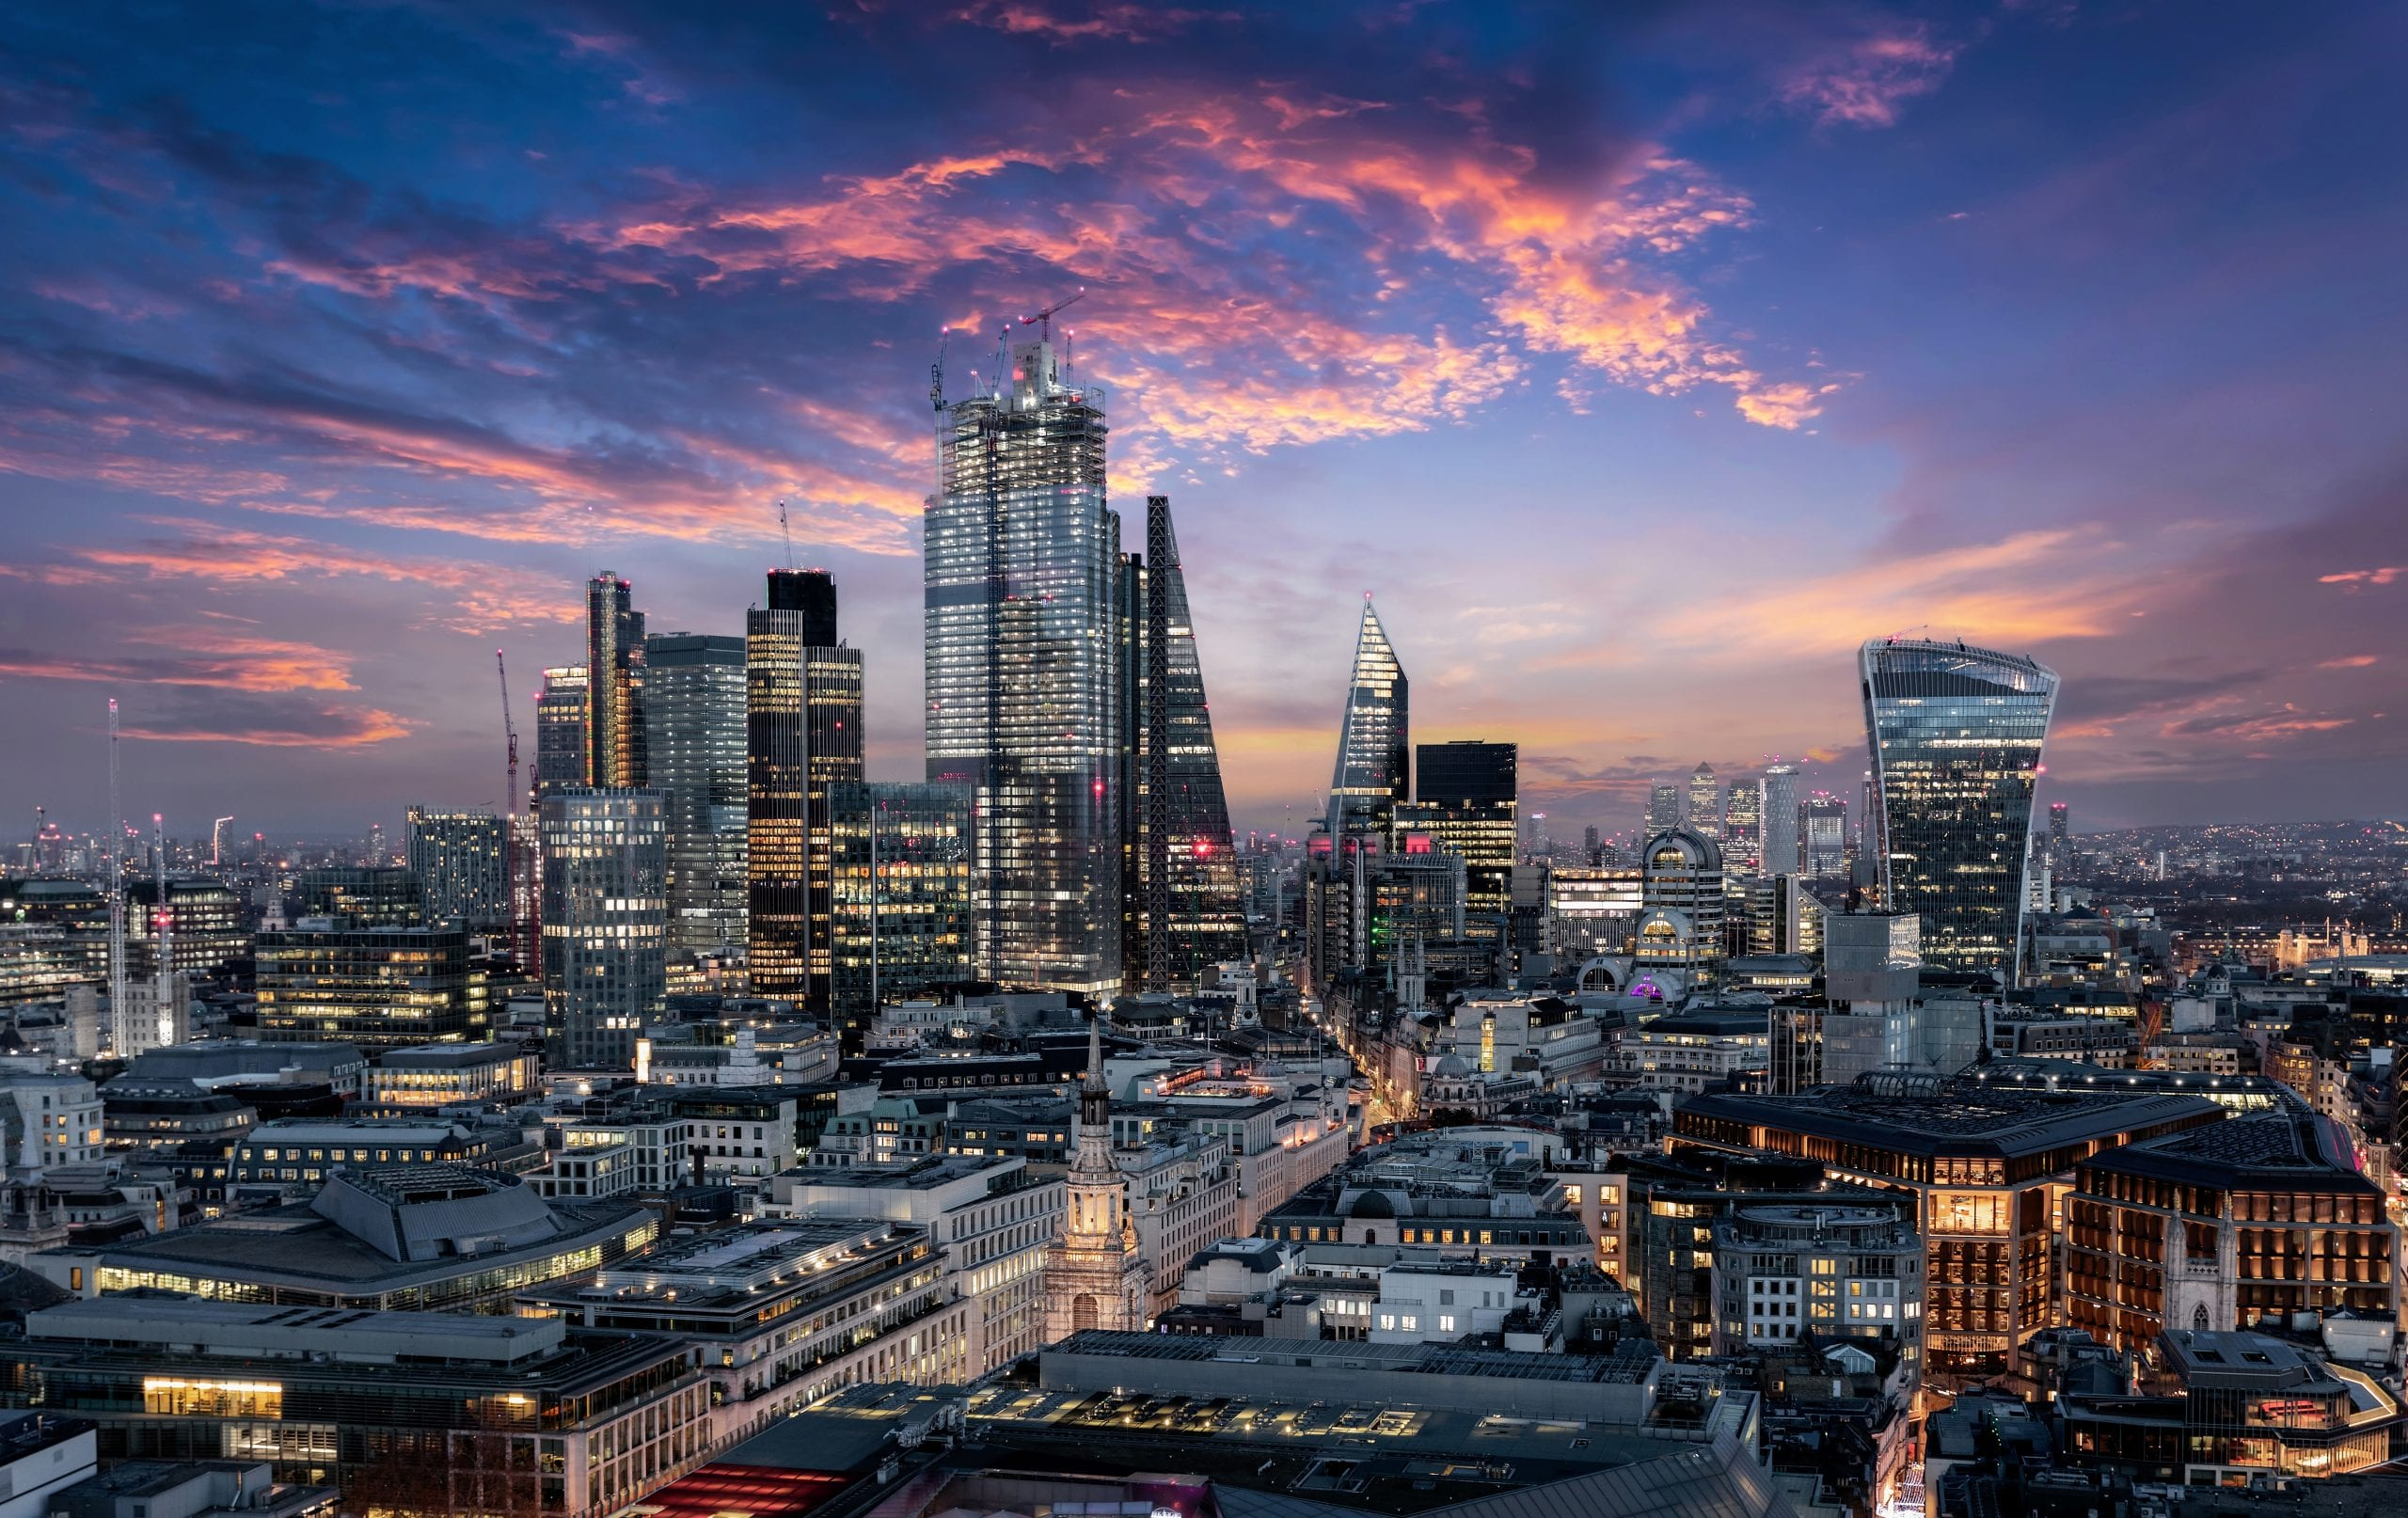 The city of London just after sunset